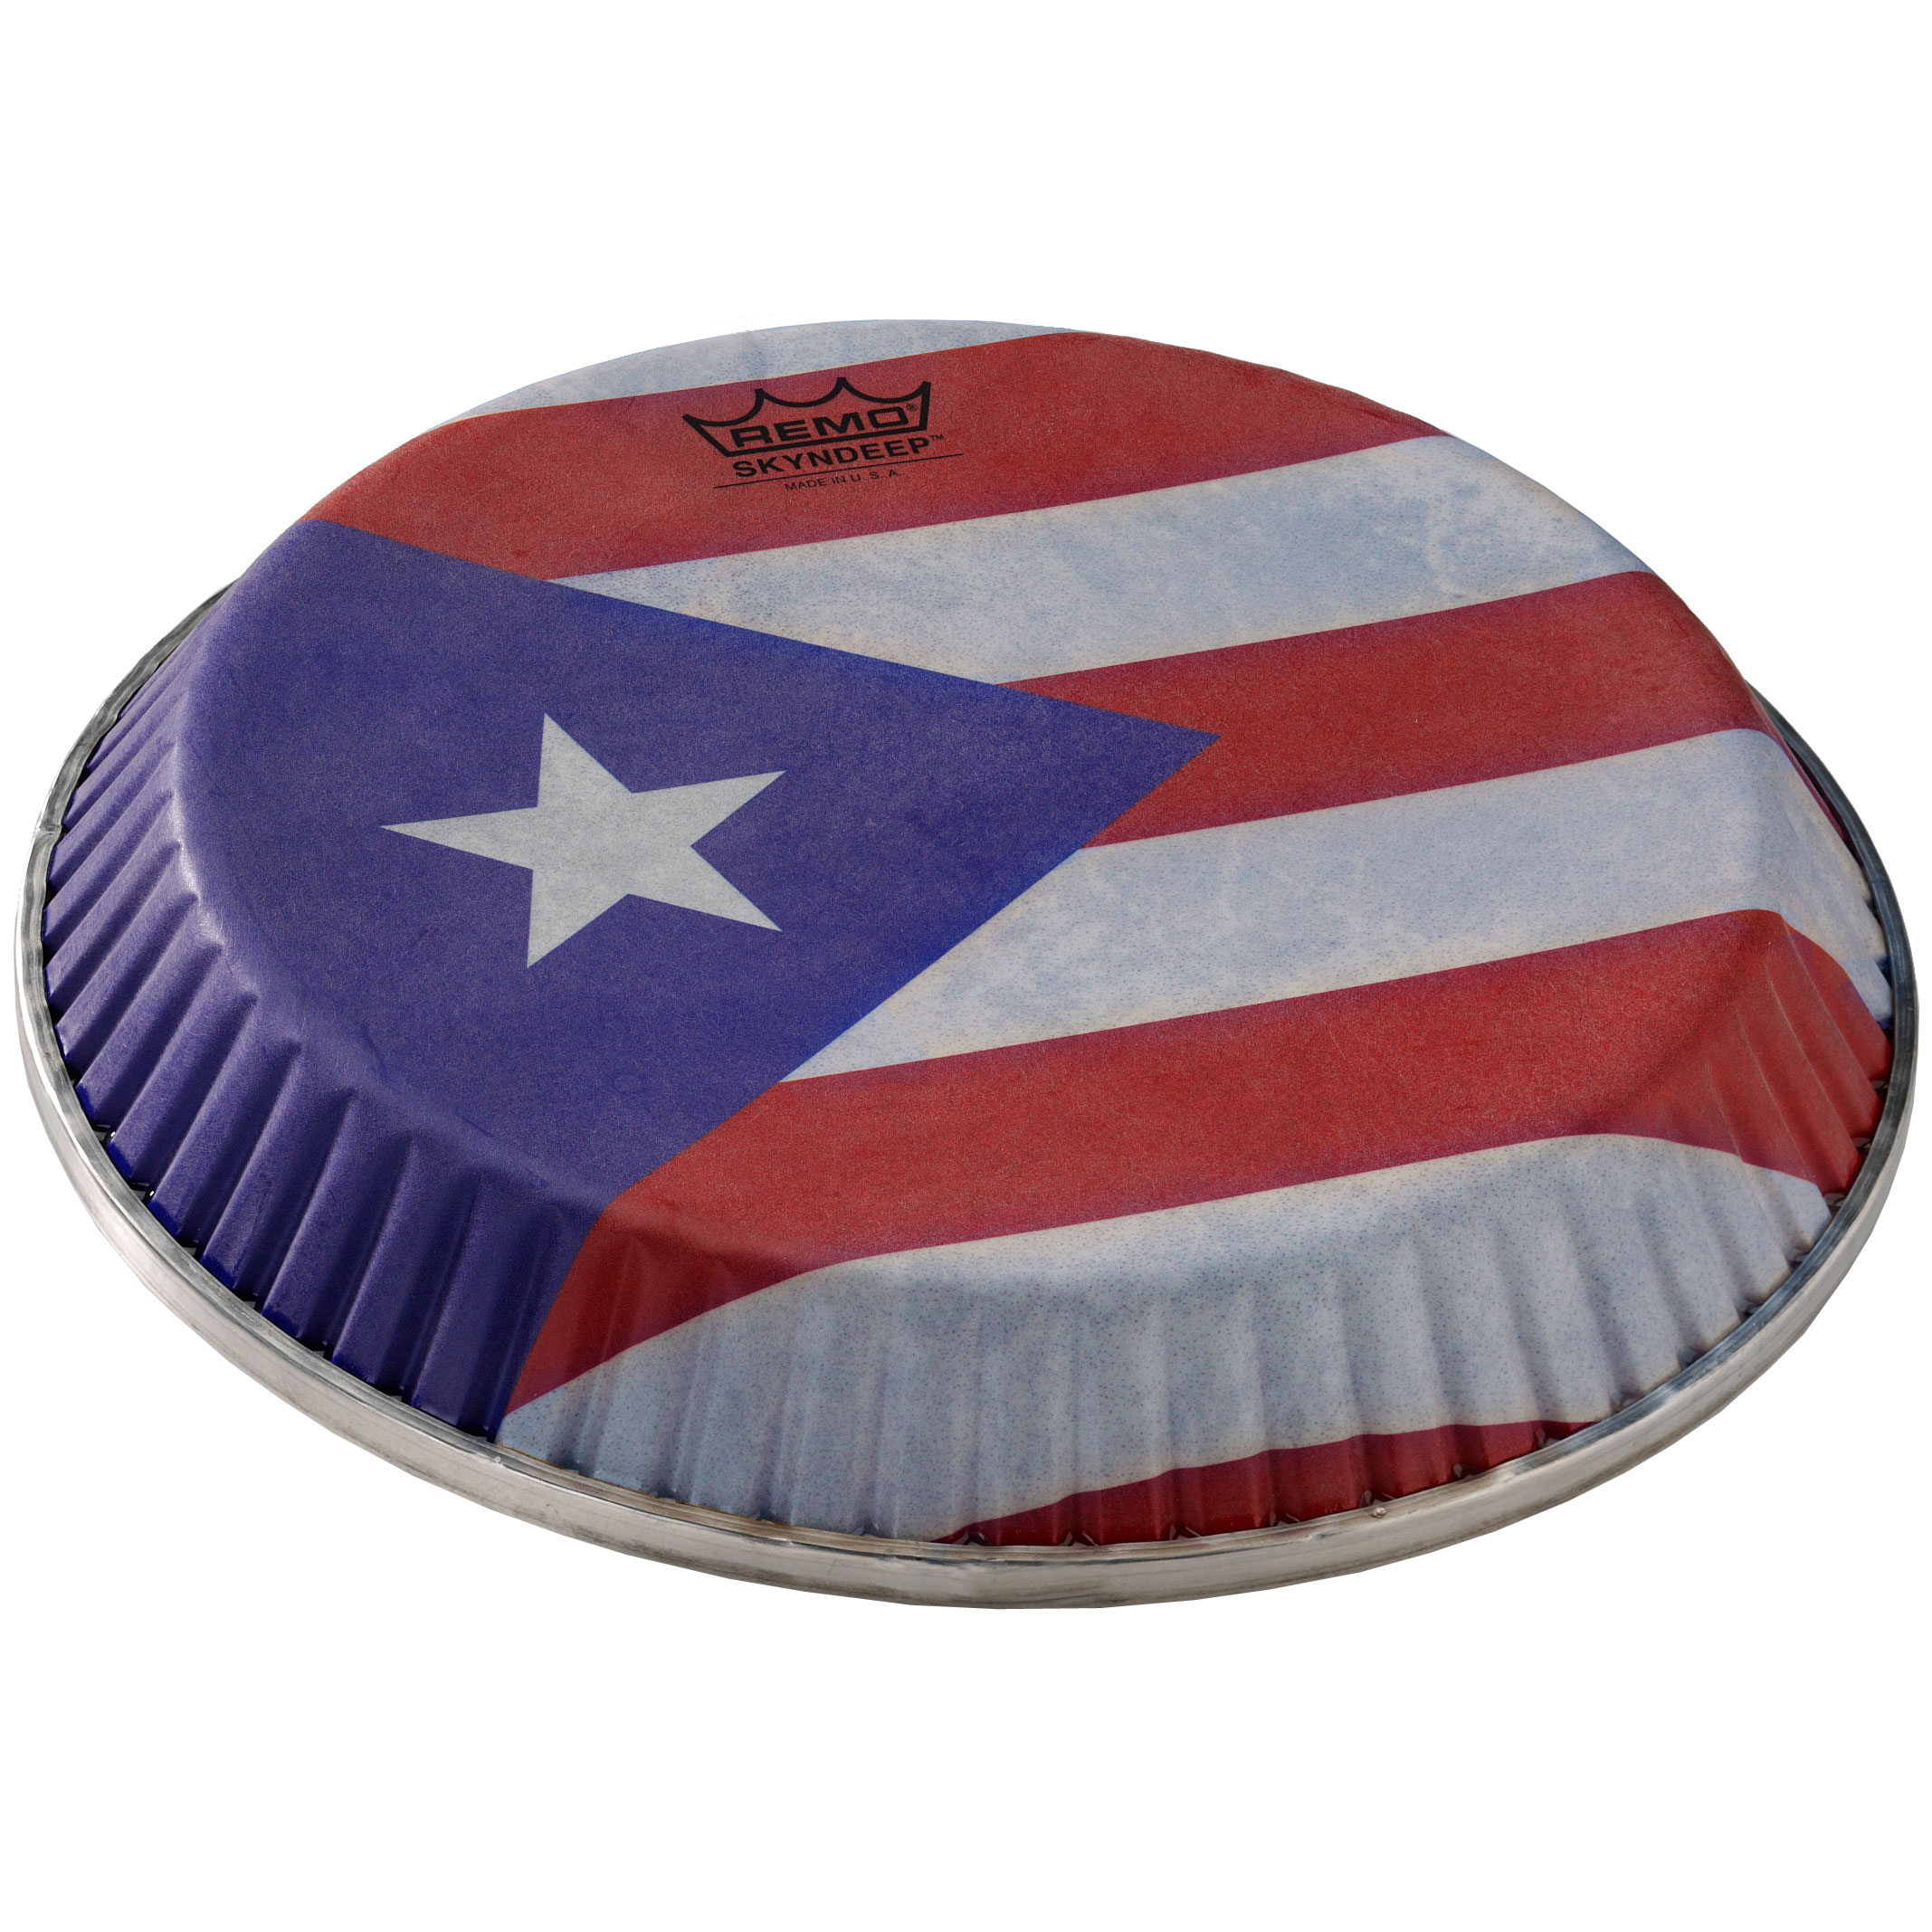 "Remo 11.06"" Symmetry Skyndeep Conga Drum Head (D4 Collar) with Puerto Rican Flag Graphic"